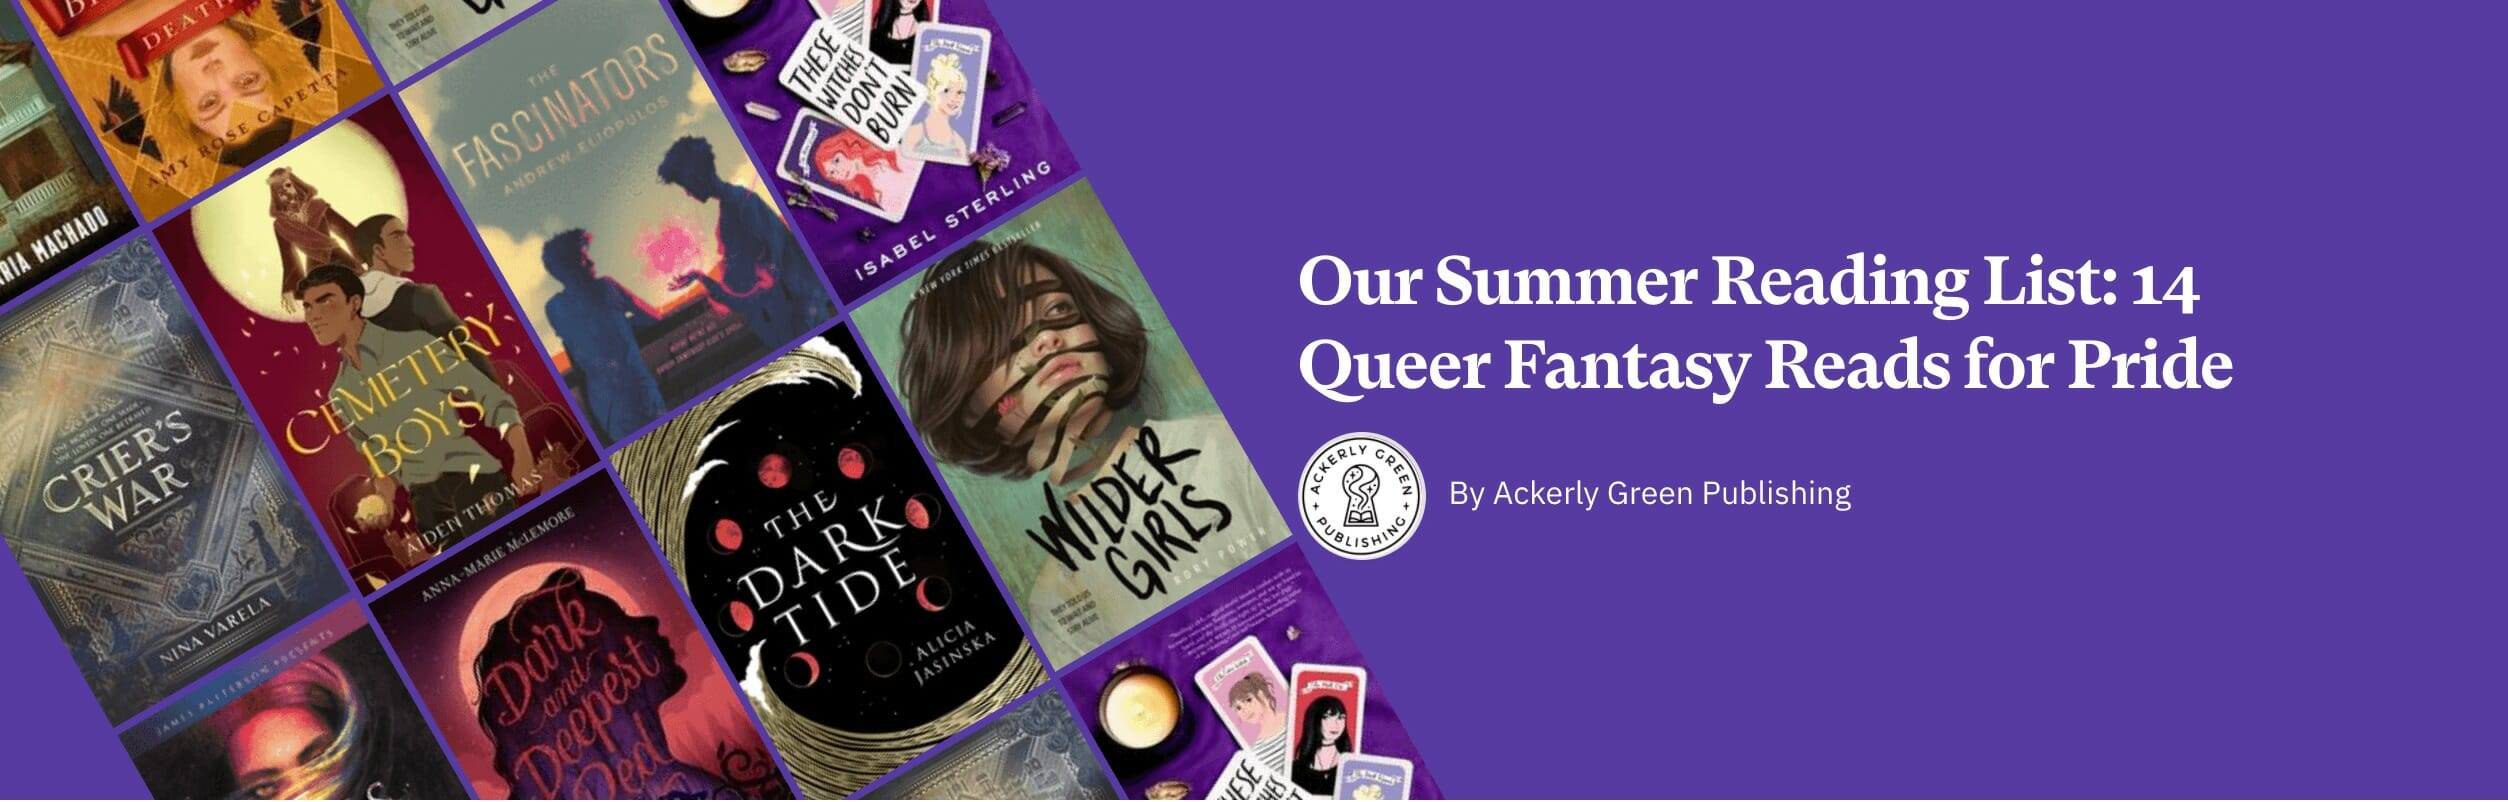 Our Summer Reading List: 14 Queer Fantasy Reads for Pride